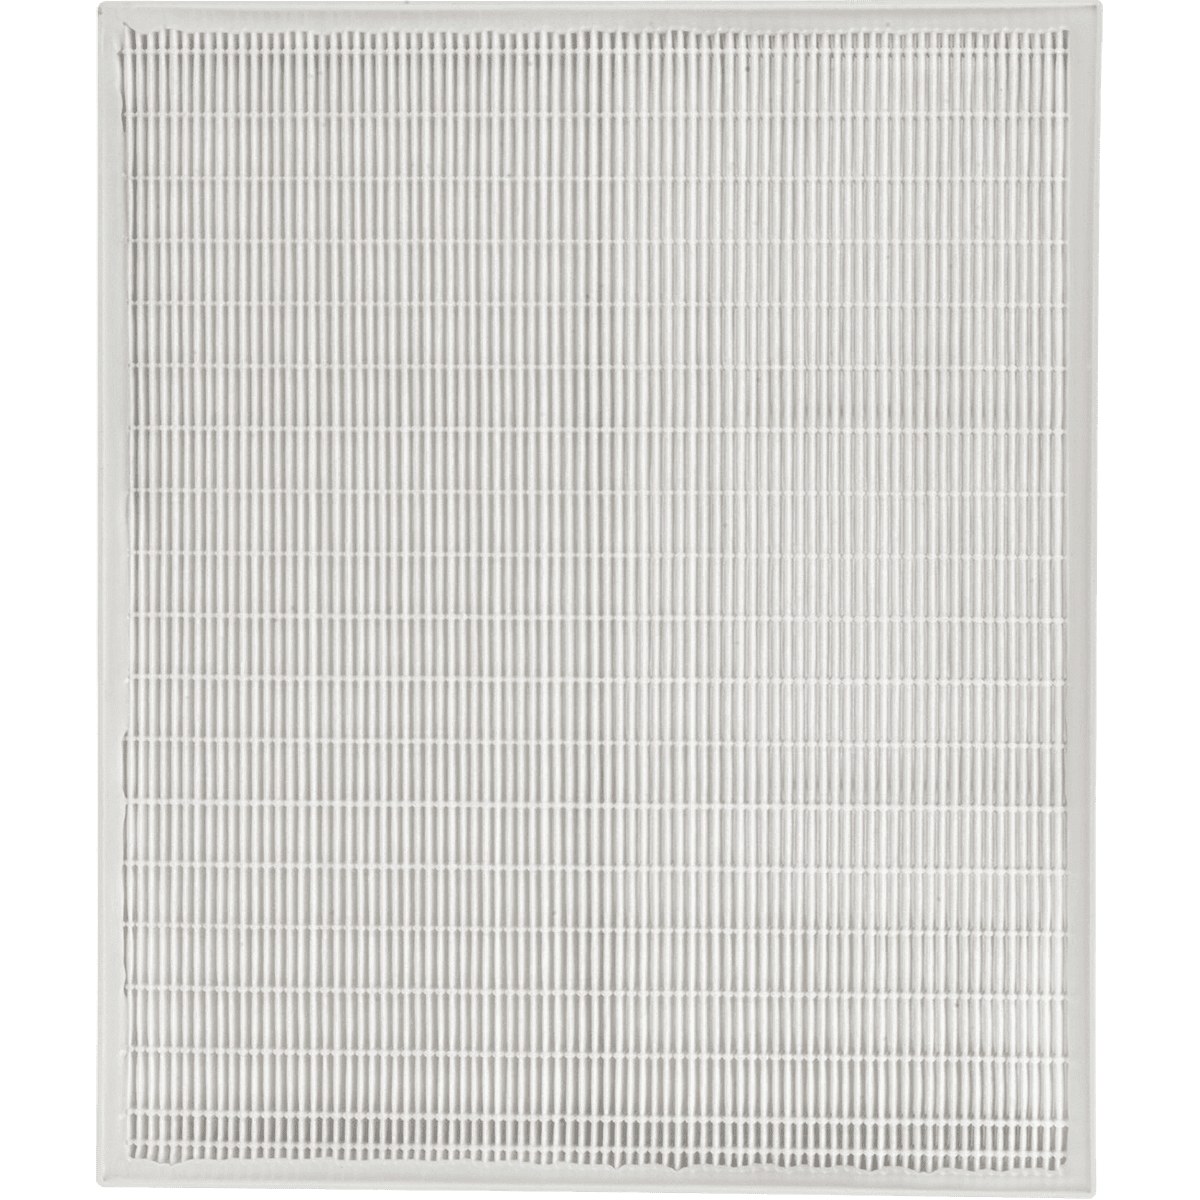 Master Brands HK Large HEPA Filter for Whirlpool Air Purifiers wh6363